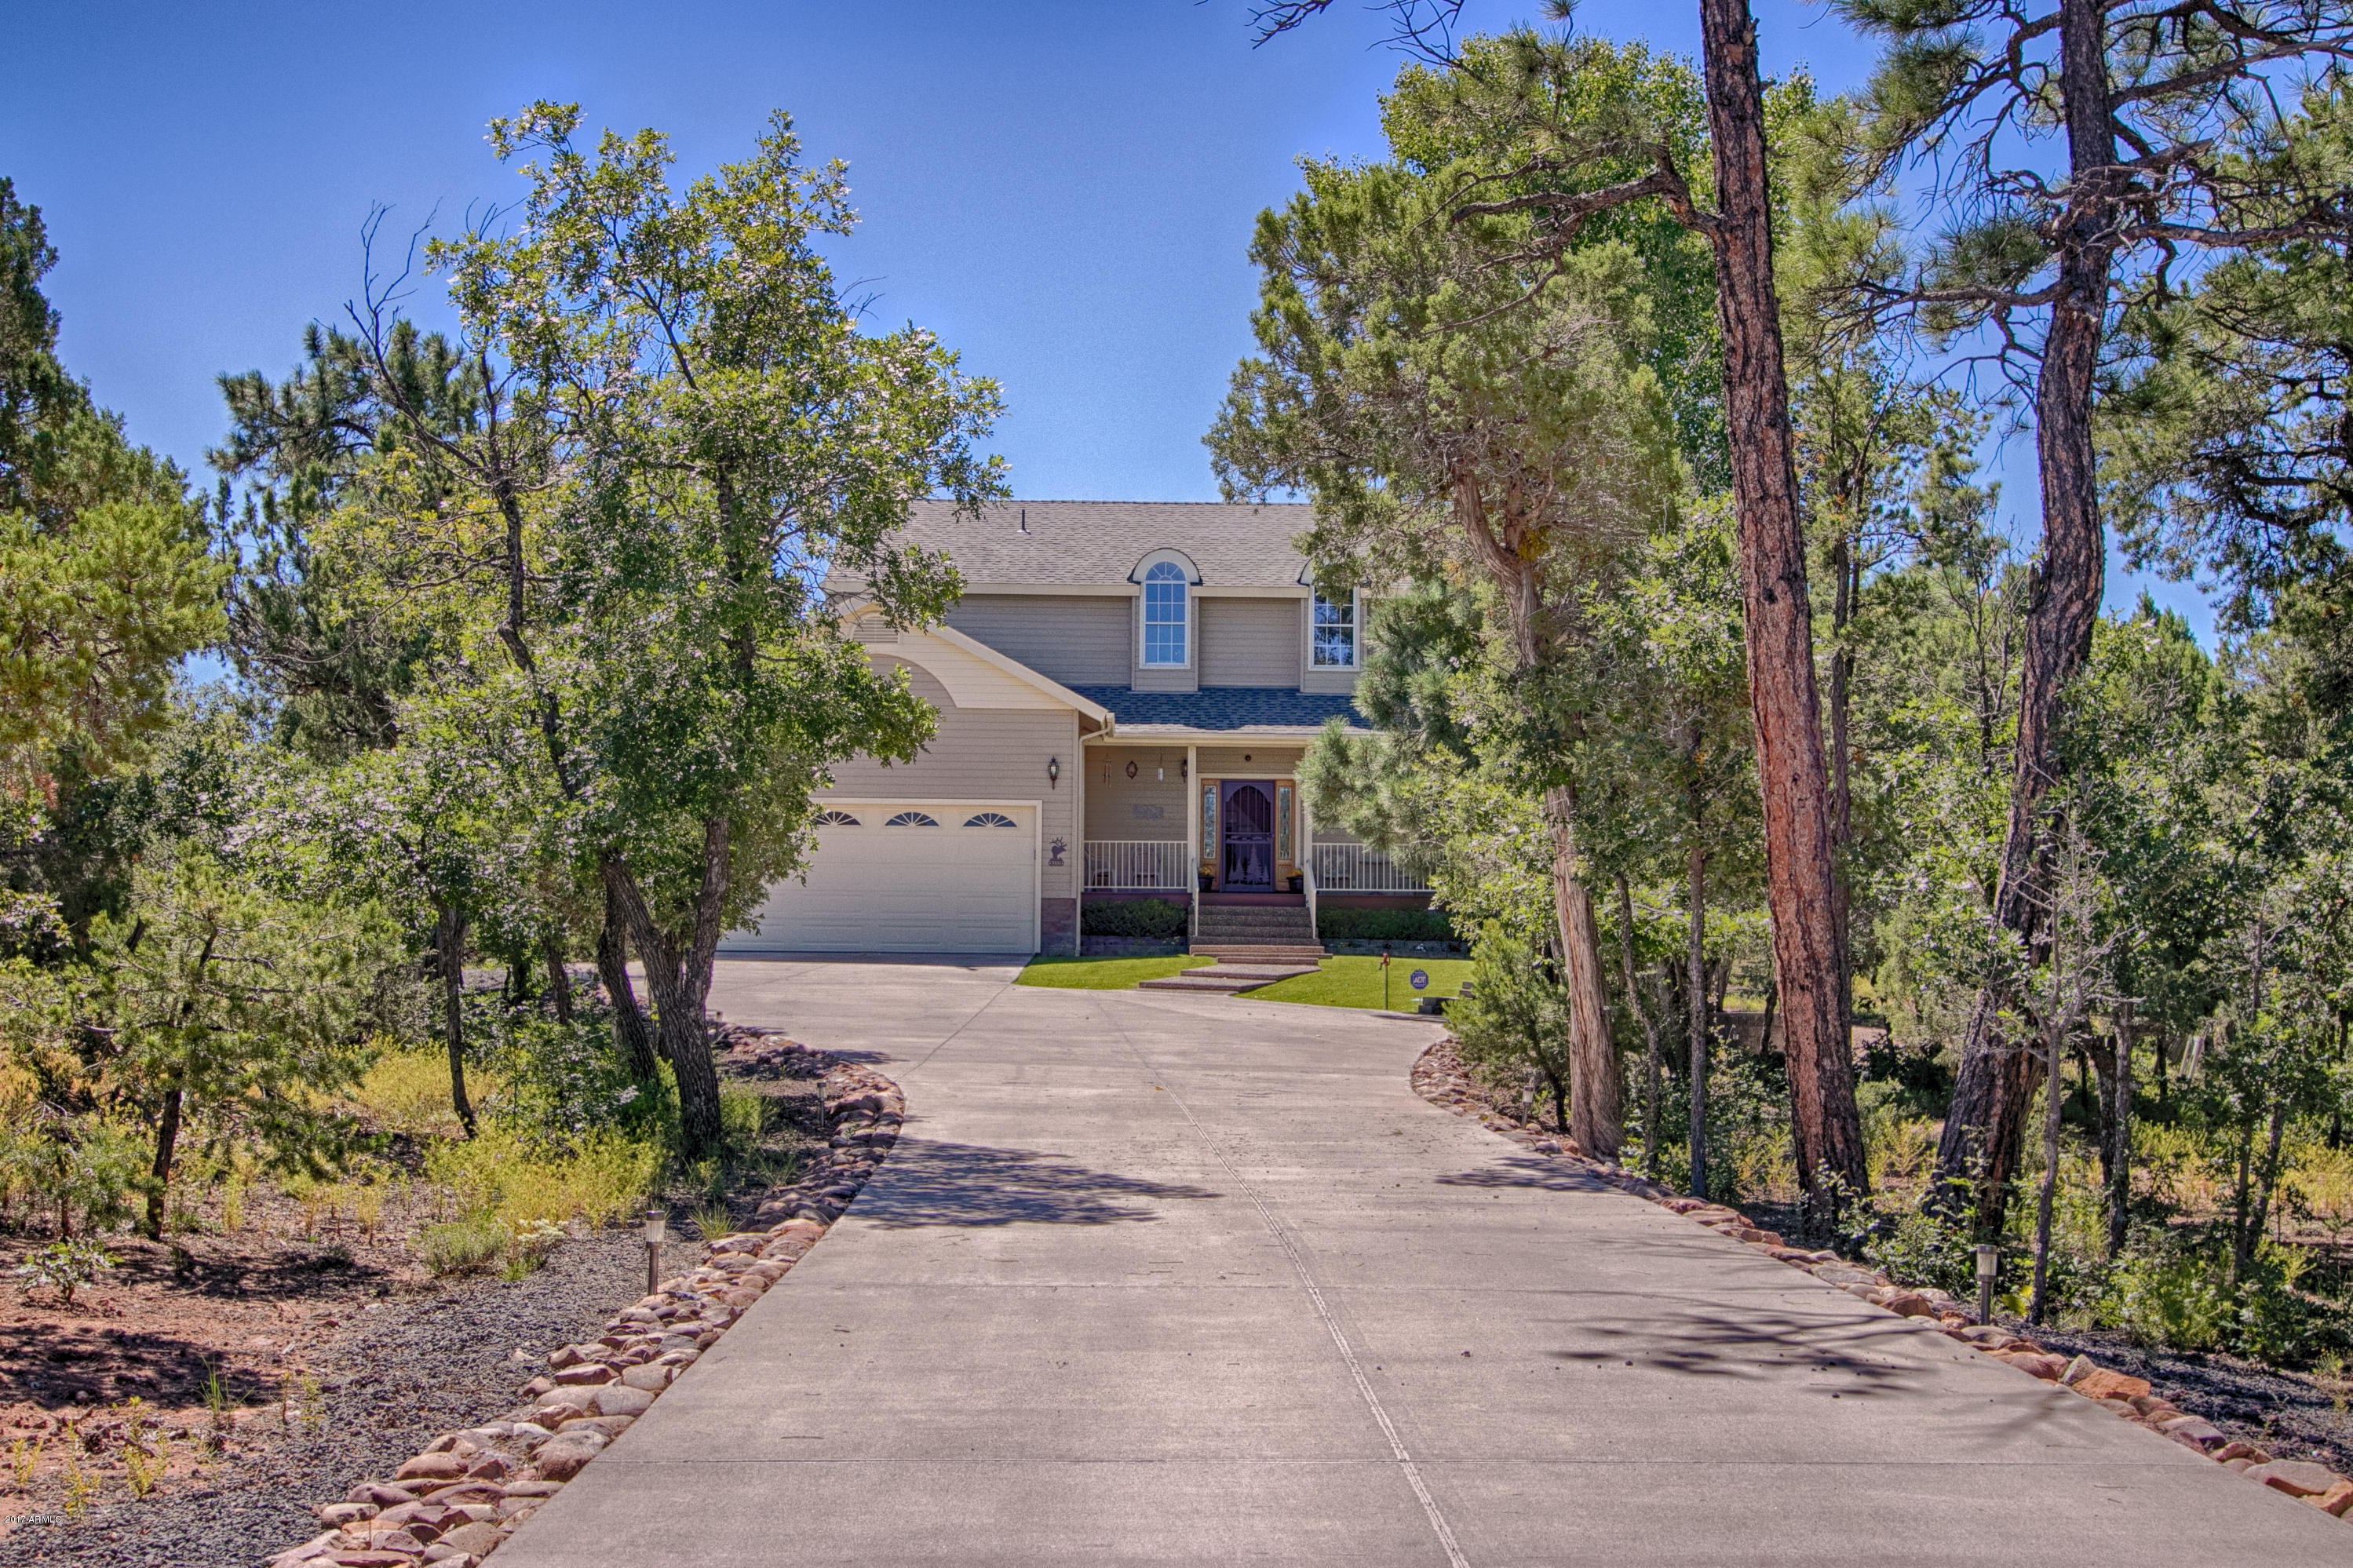 881 W SIERRA PINES Drive Show Low, AZ 85901 - MLS #: 5803759